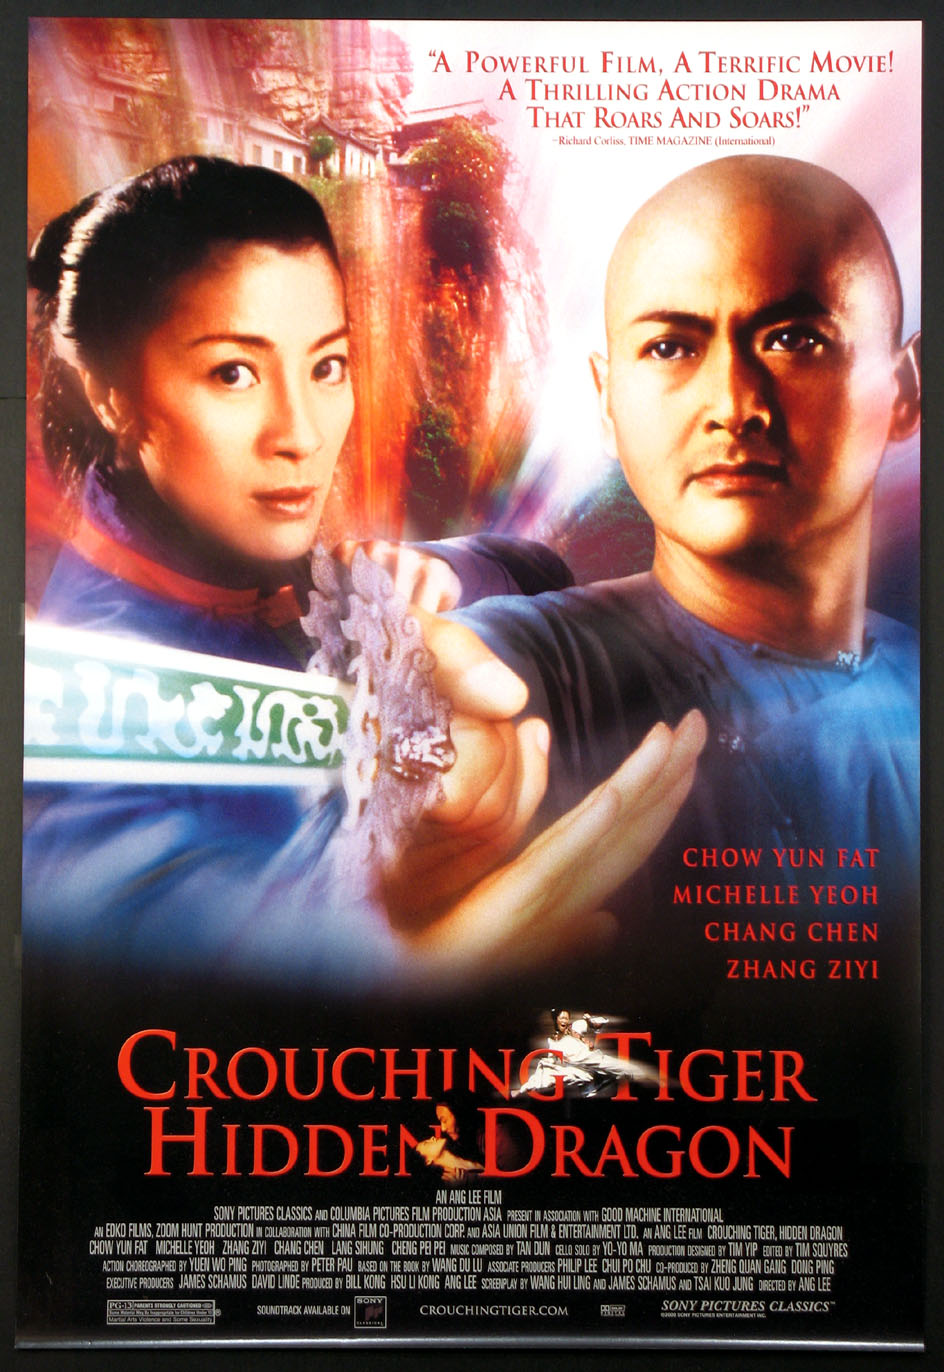 CROUCHING TIGER HIDDEN DRAGON @ FilmPosters.com